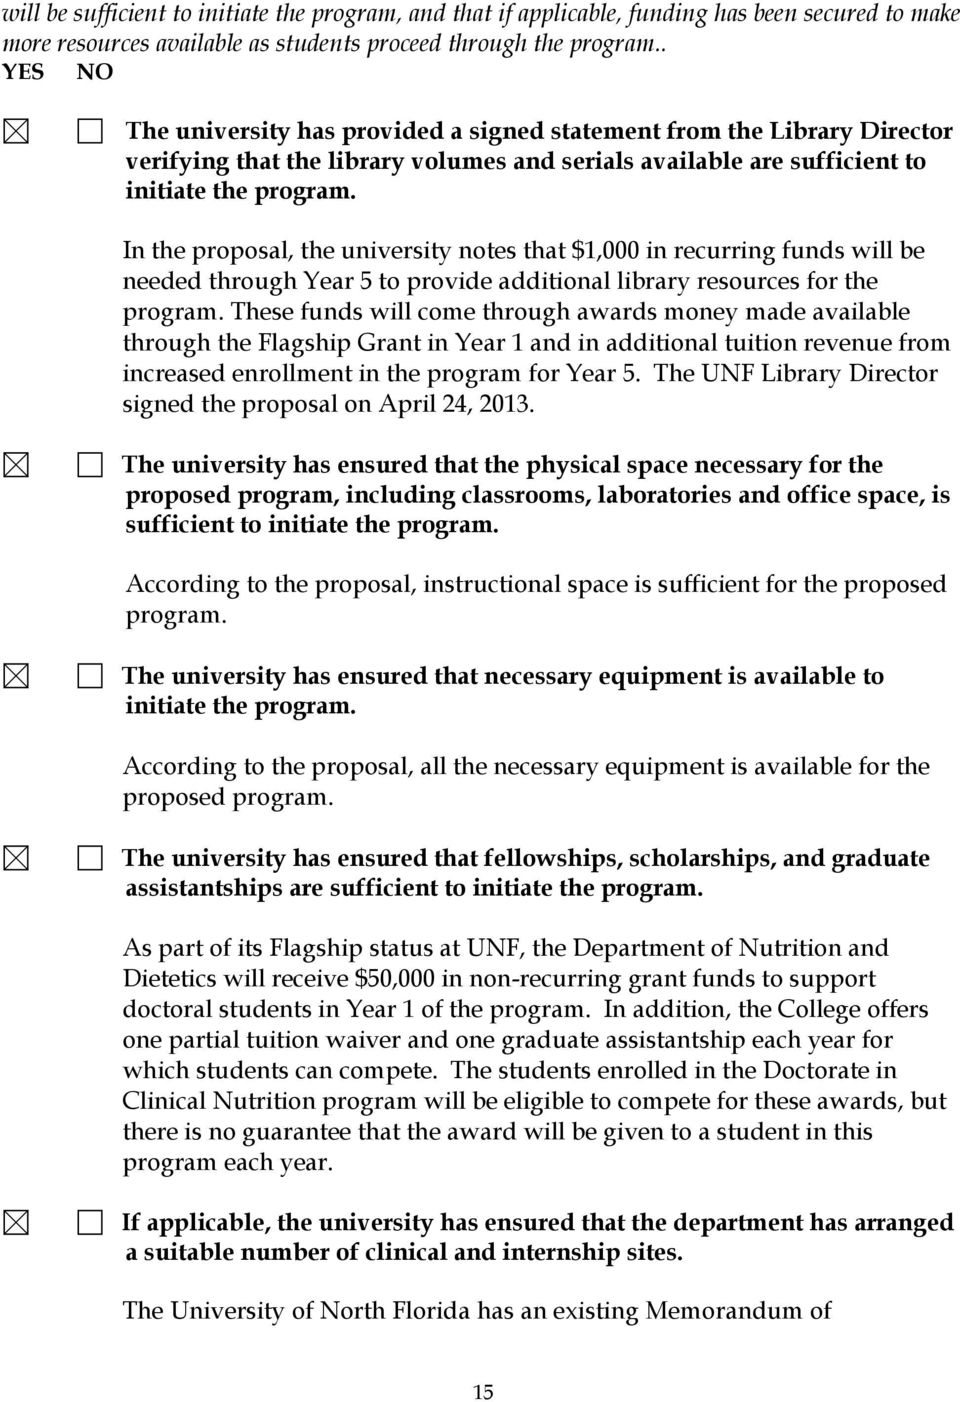 In the proposal, the university notes that $1,000 in recurring funds will be needed through Year 5 to provide additional library resources for the program.